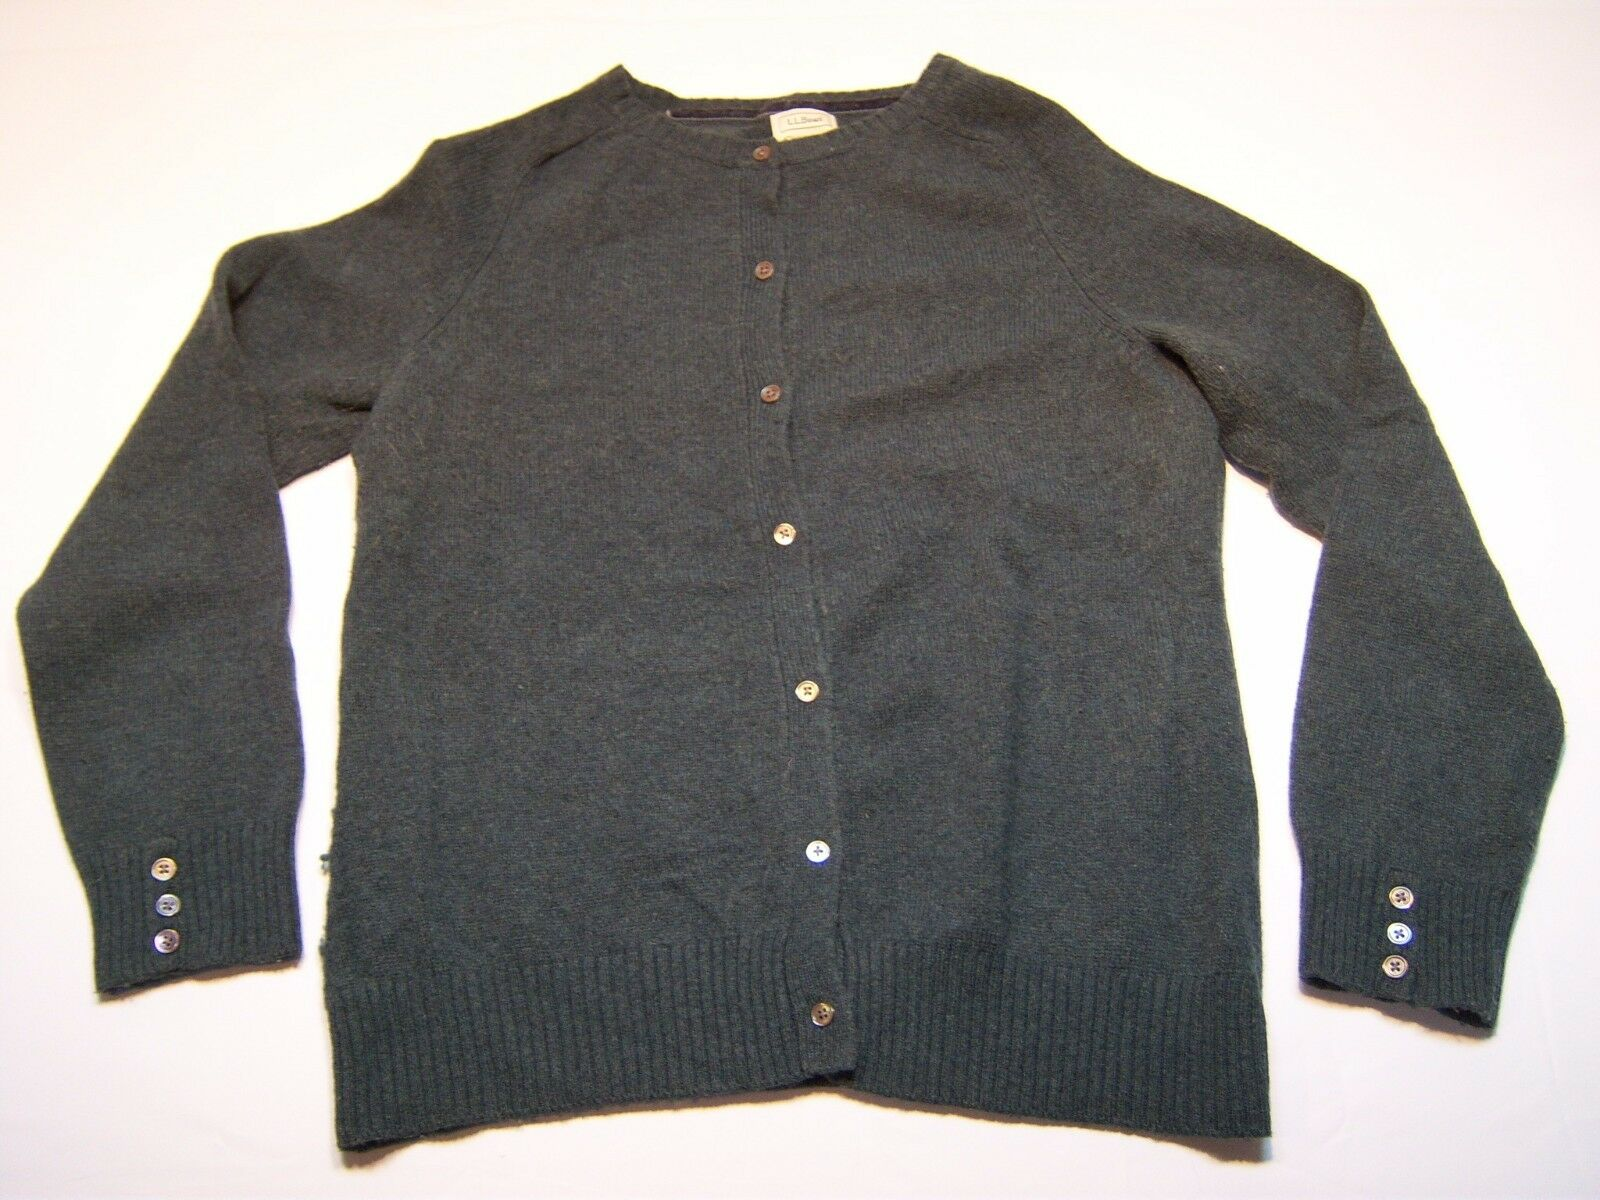 L.L Bean Casual Button Down Cardigan Sweater Women's Size L